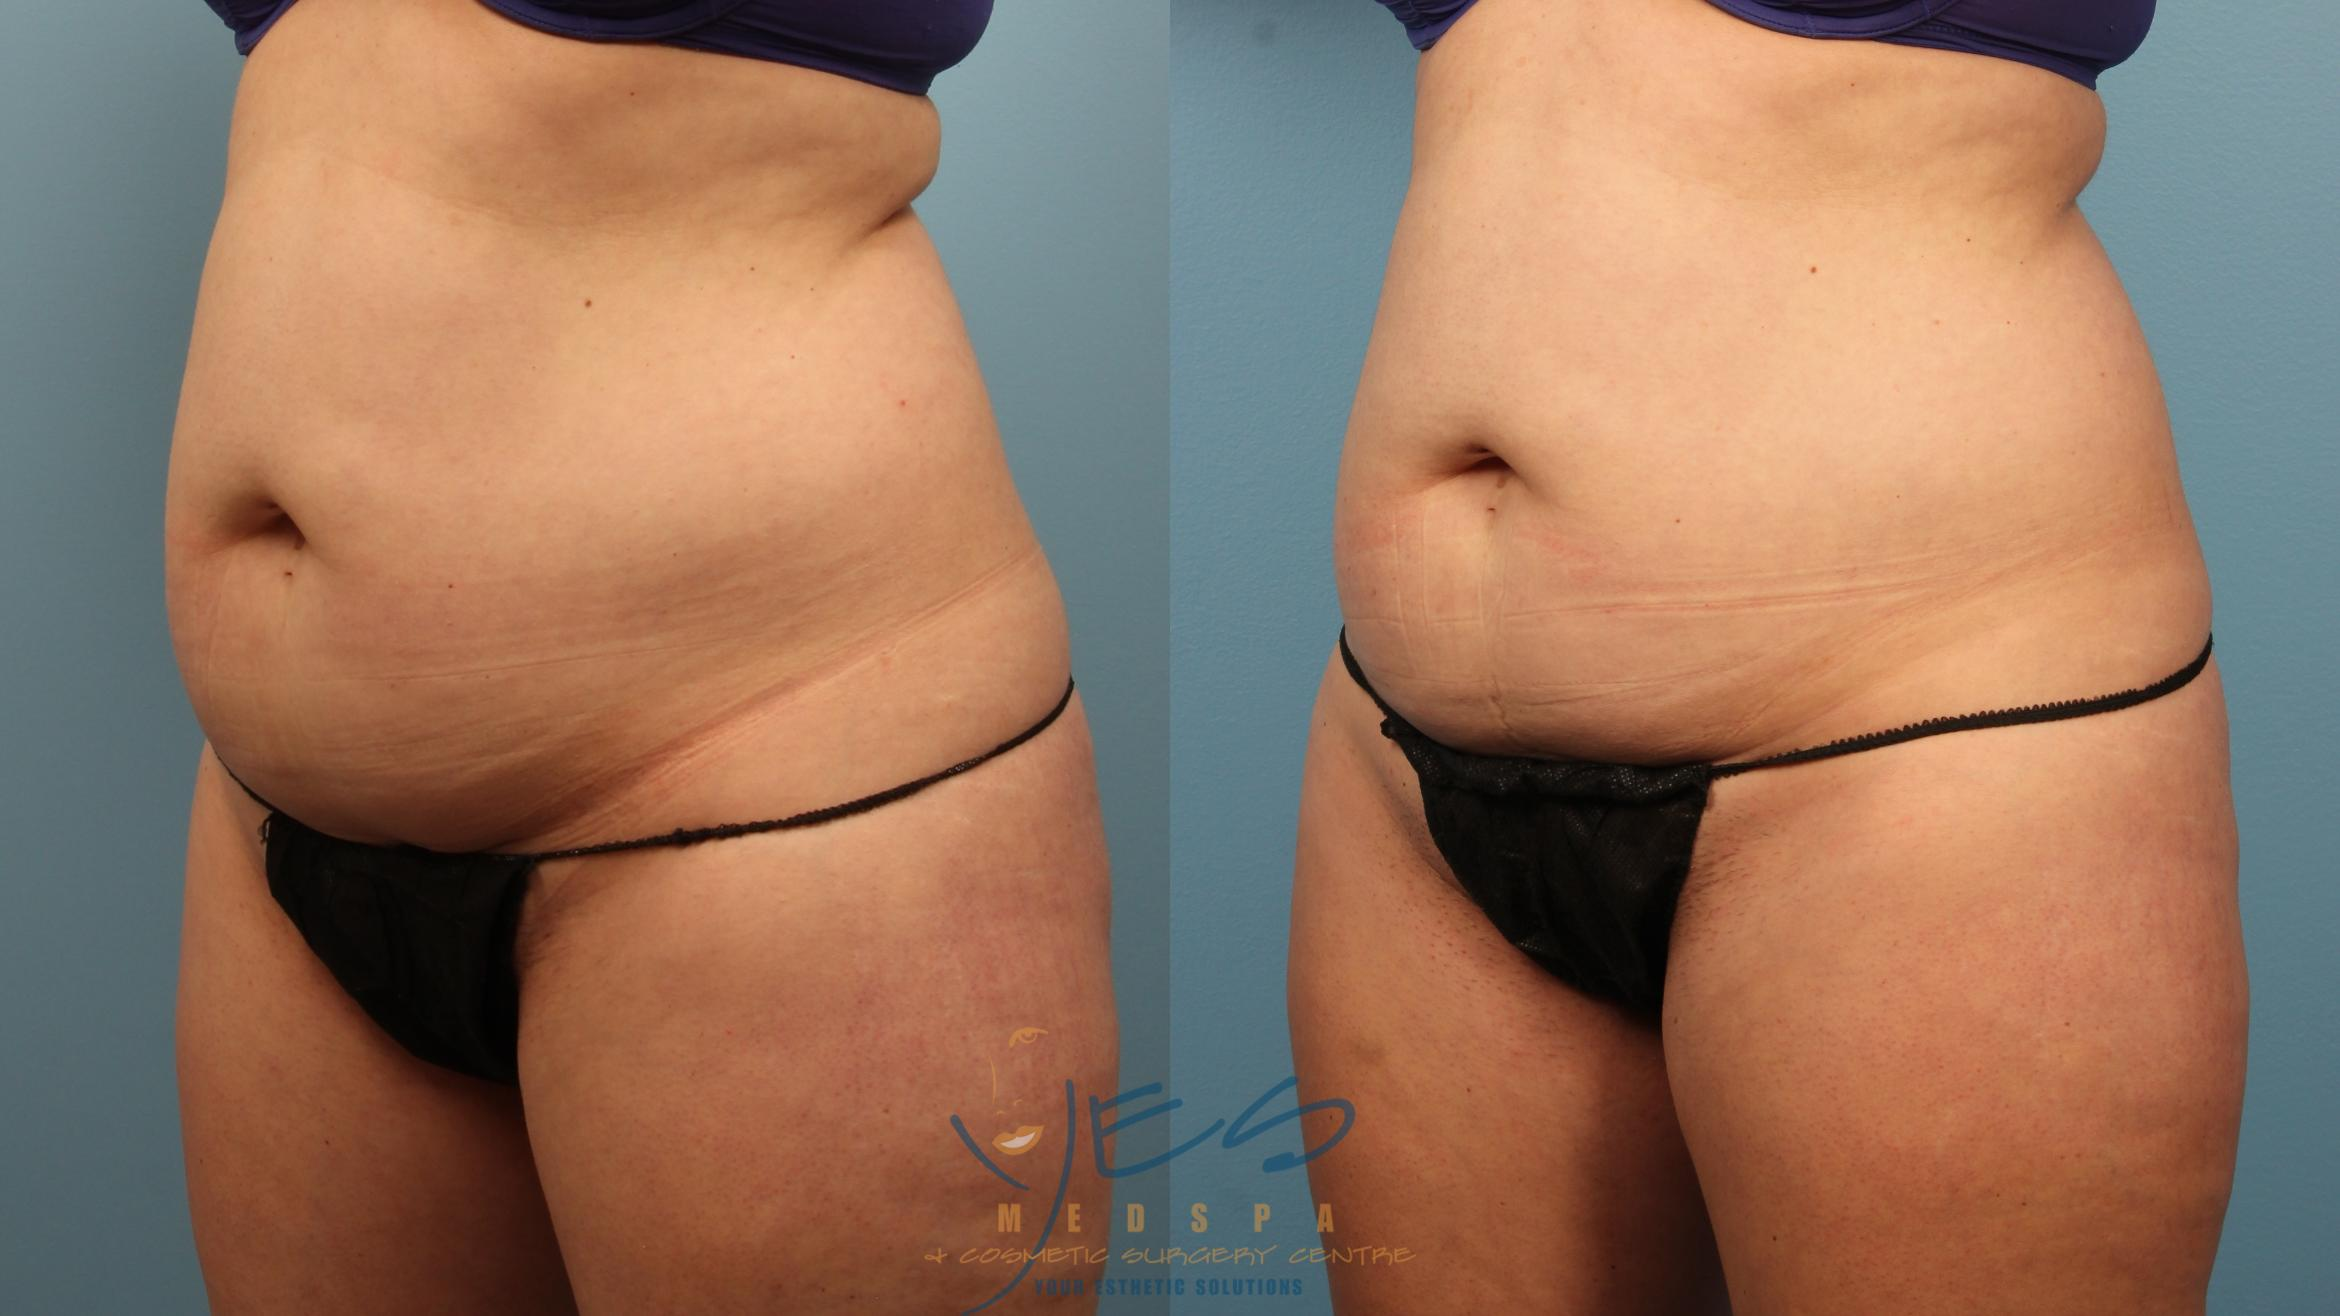 EVOLVE - TRIM Case 331 Before & After Left Oblique | Vancouver, BC | YES Medspa & Cosmetic Surgery Centre